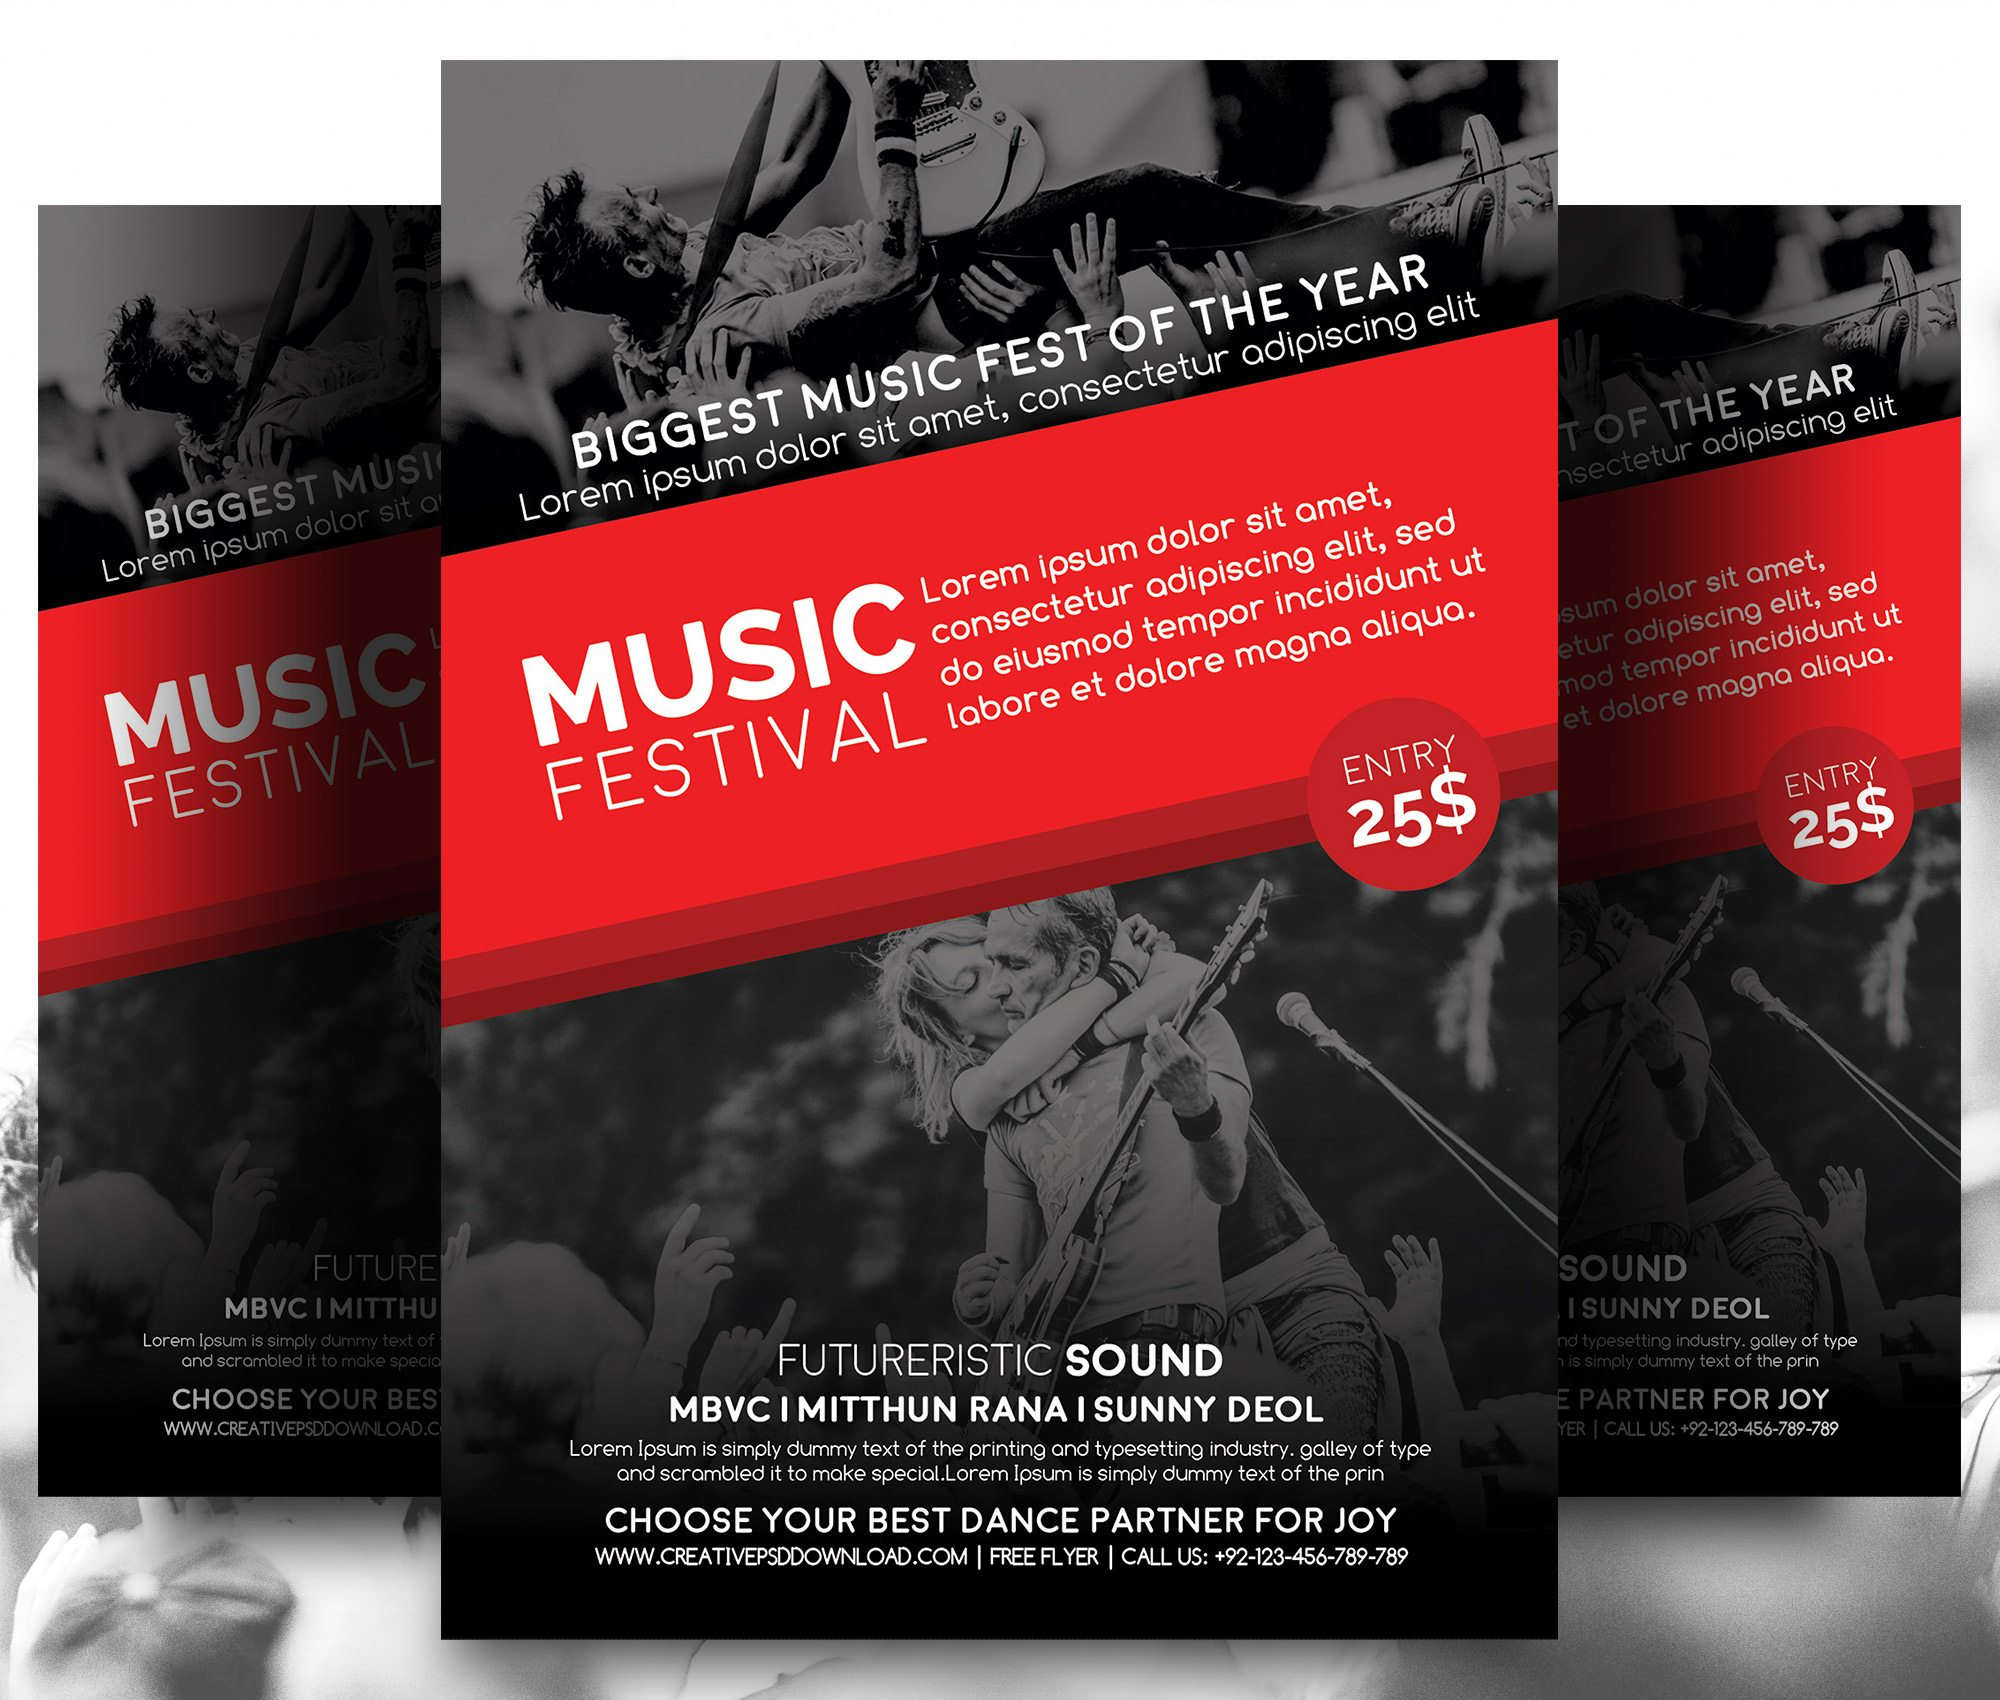 free festival flyer template psd,free psd business flyer templates,free psd flyer,event flyer templates free download,free psd flyer templates 2015,free nightclub flyer templates,free party flyer templates,festival flyer psd free,Music Festival Free Flyer PSD